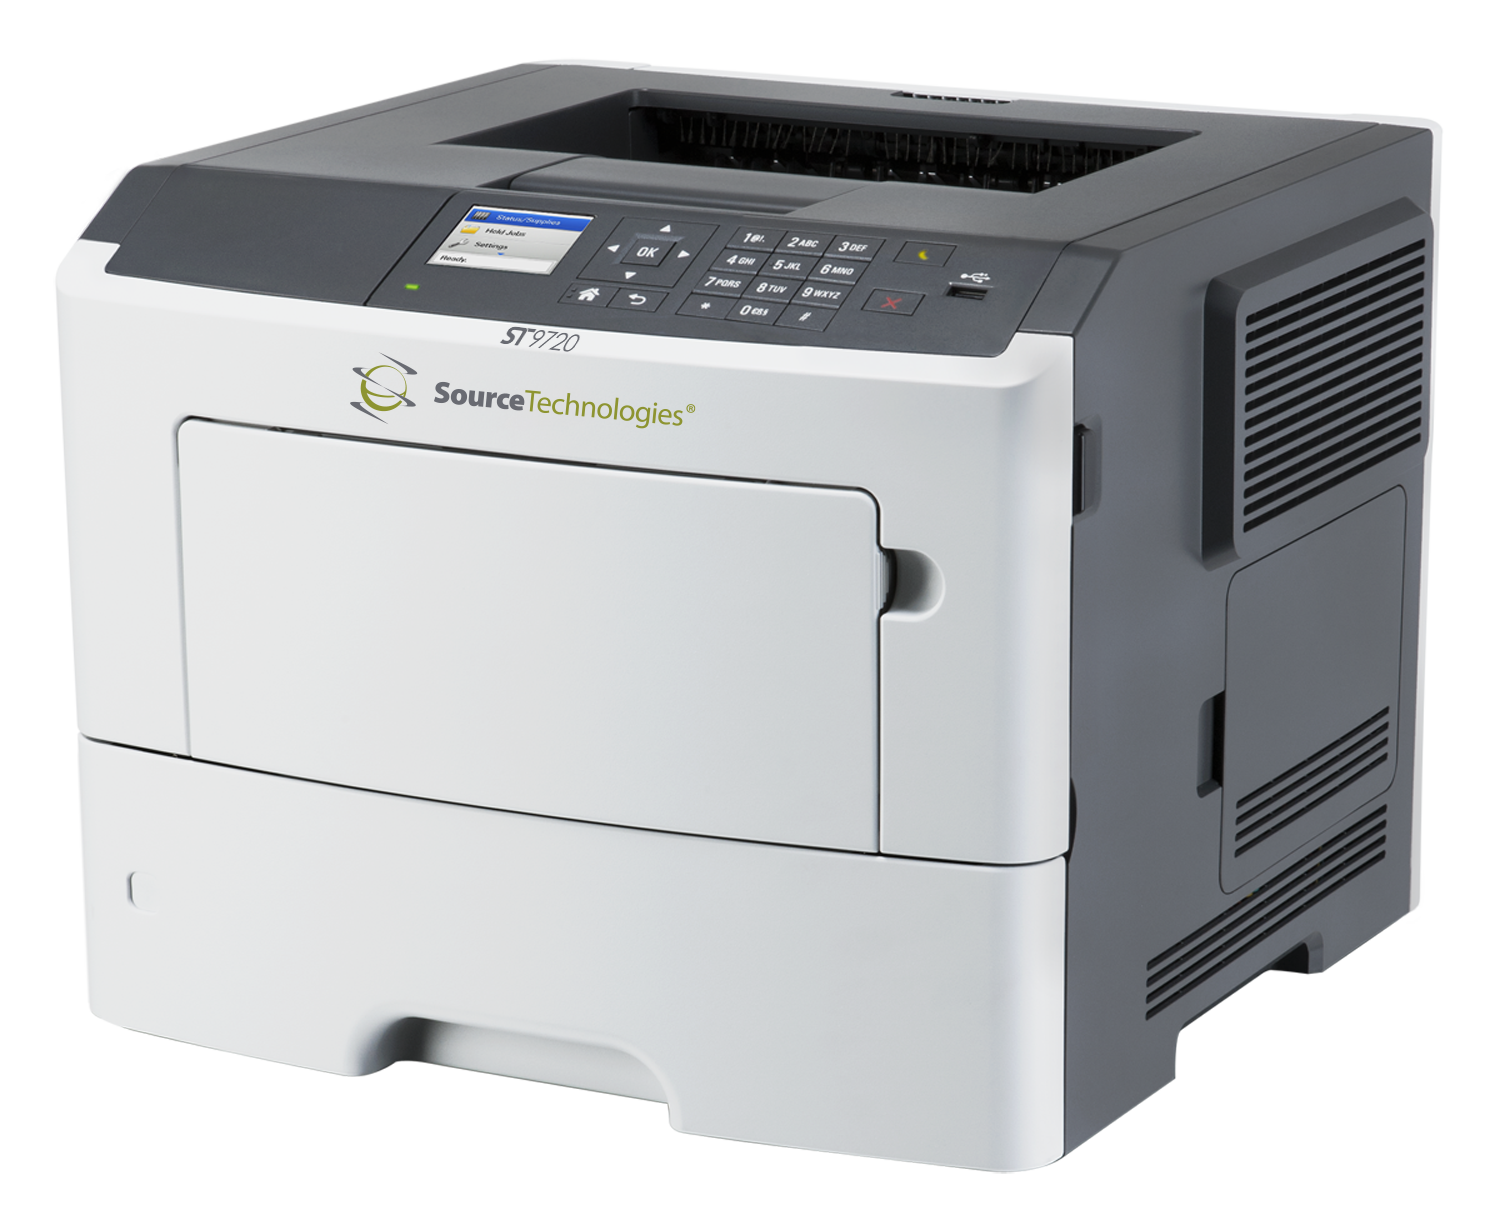 Source Technologies ST9720 MICR Check Printer